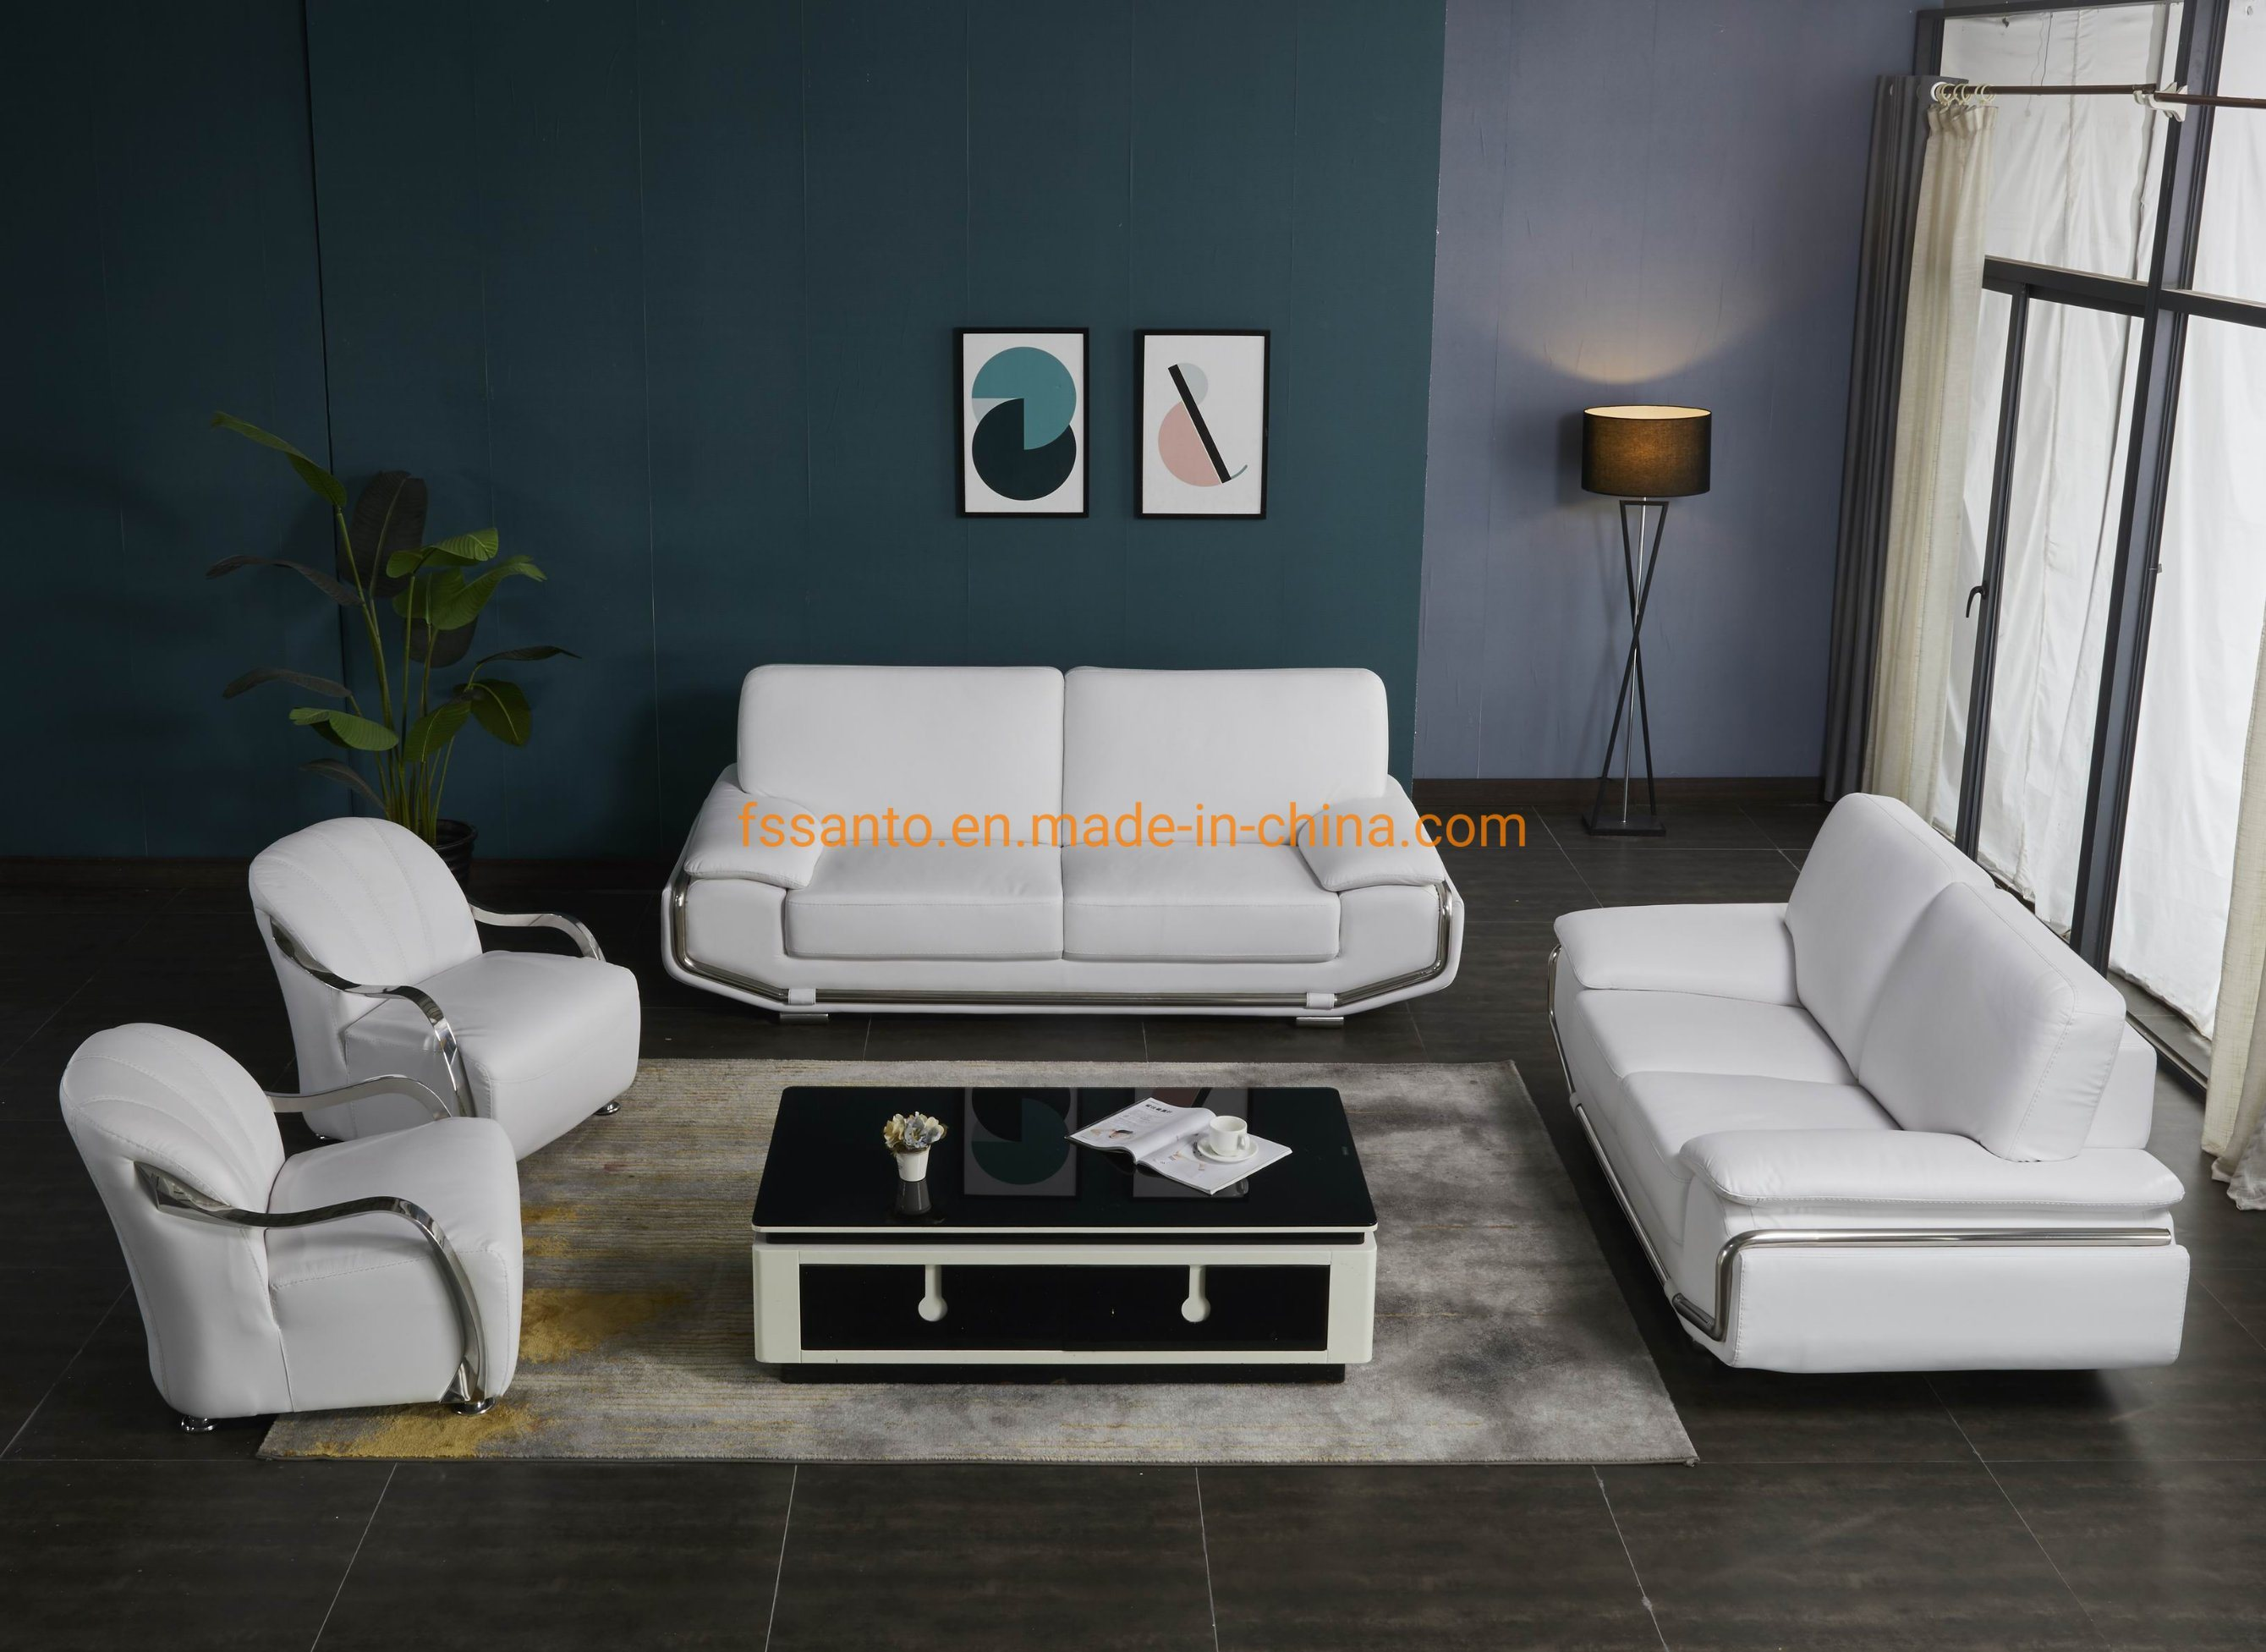 Leather 3 2 1 9 7 Seater Living Room